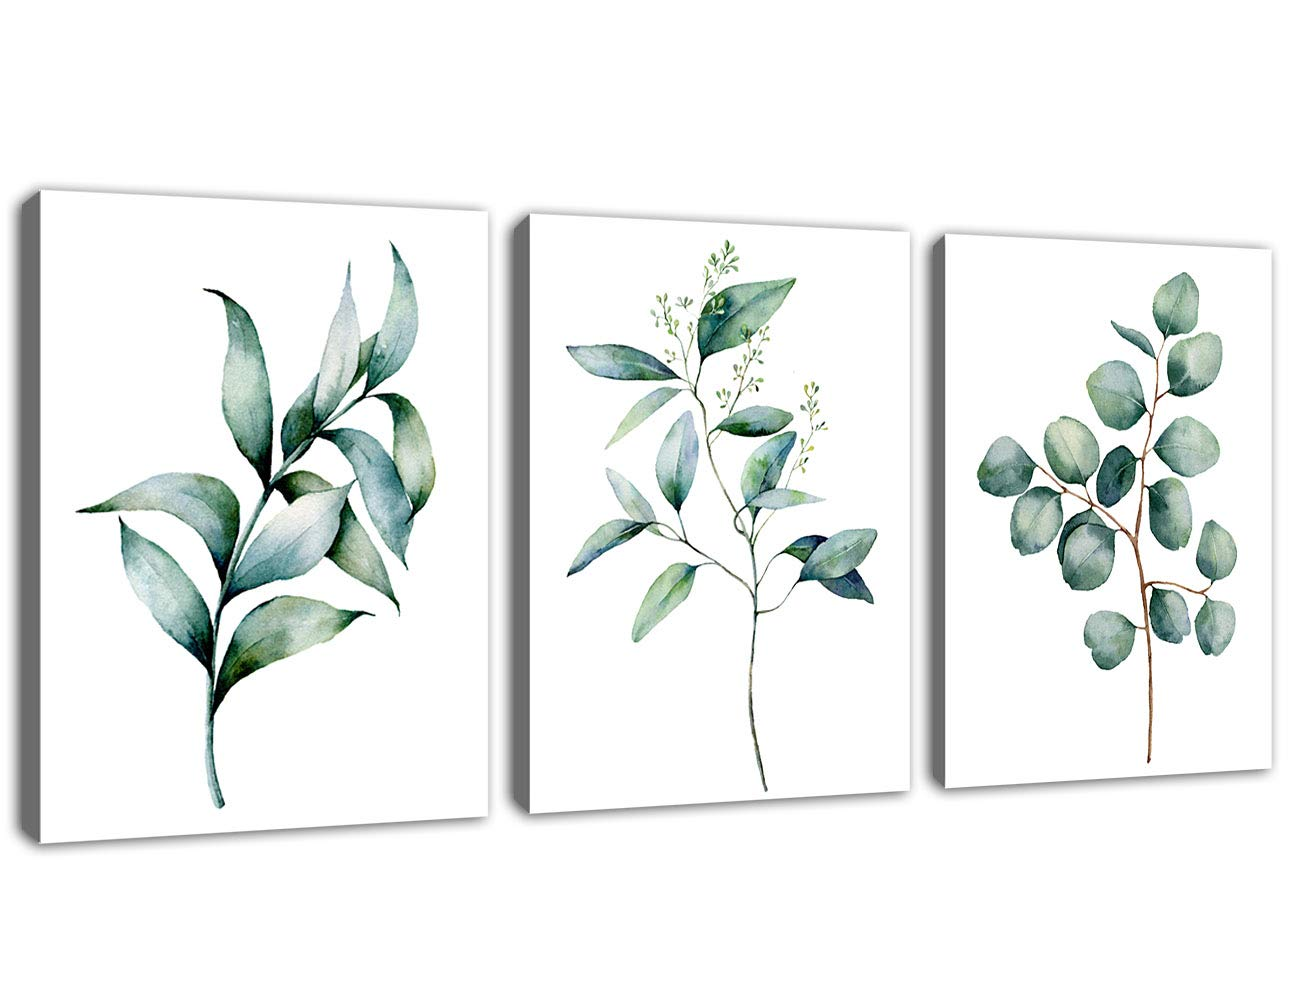 Green Leaf Wall Art Canvas Pictures Bathroom Wall Decor Modern Botanical Watercolor Painting Eucalyptus Leaves Bedroom Decoration Contemporary Bohemian Artwork Framed Ready To Hang 12 X 16 3 Pieces Buy Online In